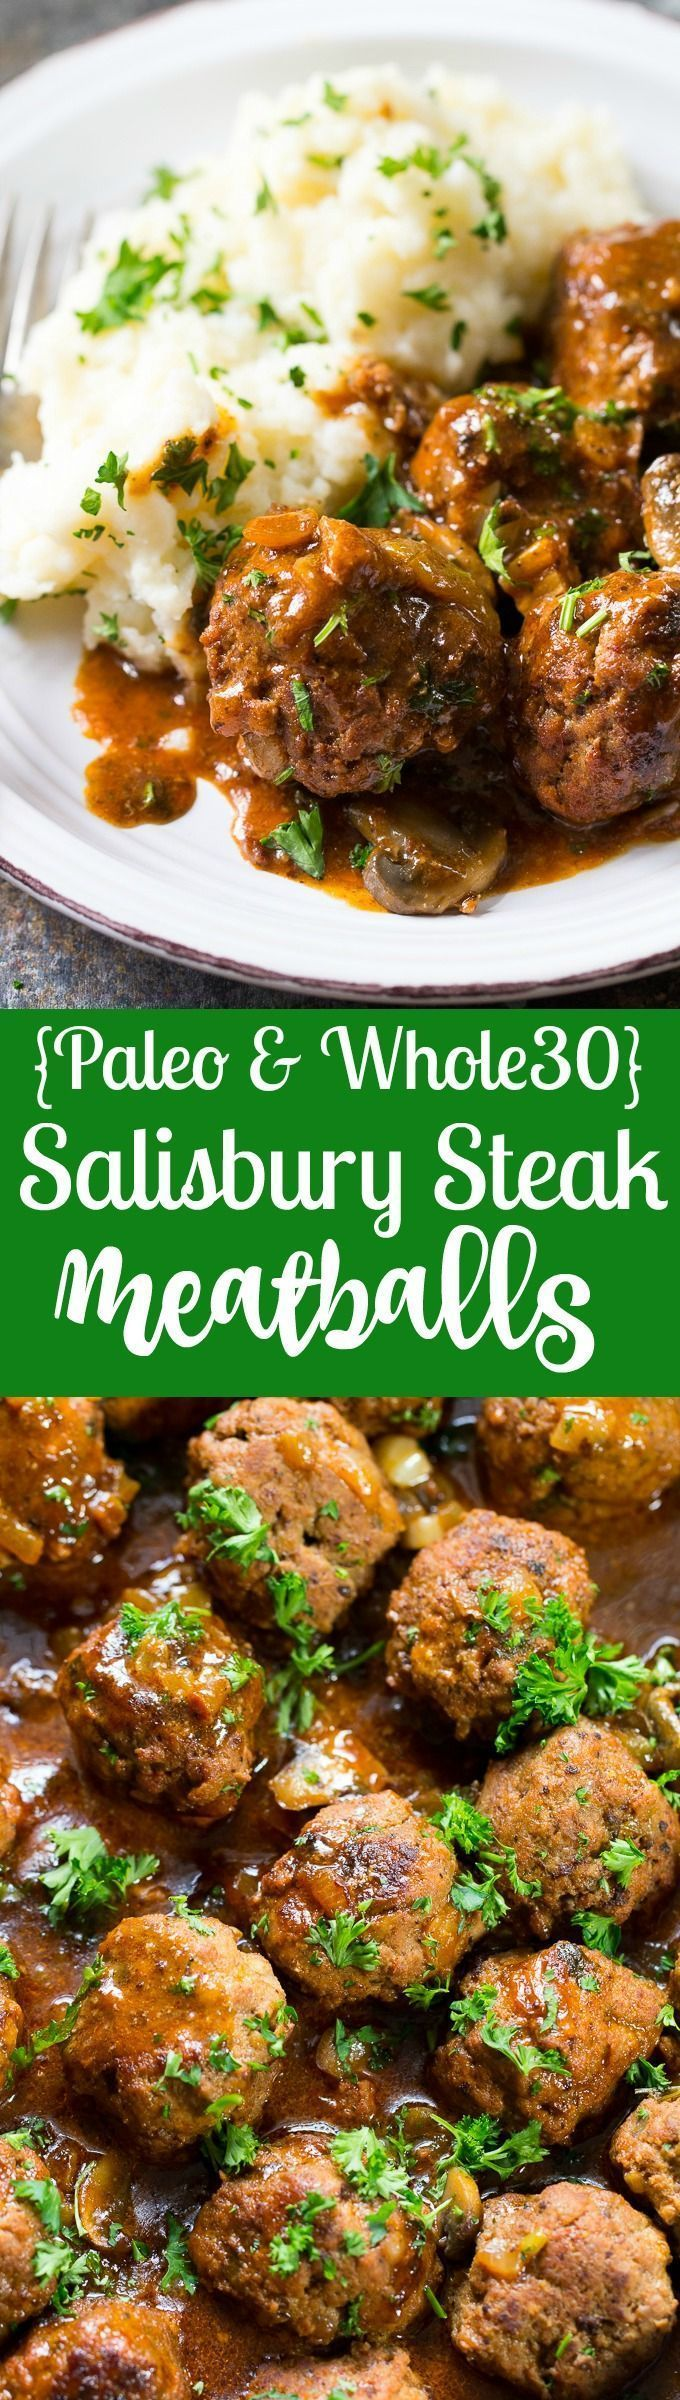 These easy and delicious Paleo Salisbury Steak Meatballs are great for families, kid friendly, Whole30 compliant and perfect with mashed white or sweet potatoes! Gluten free, dairy free, sugar free, ready is 30 minutes.